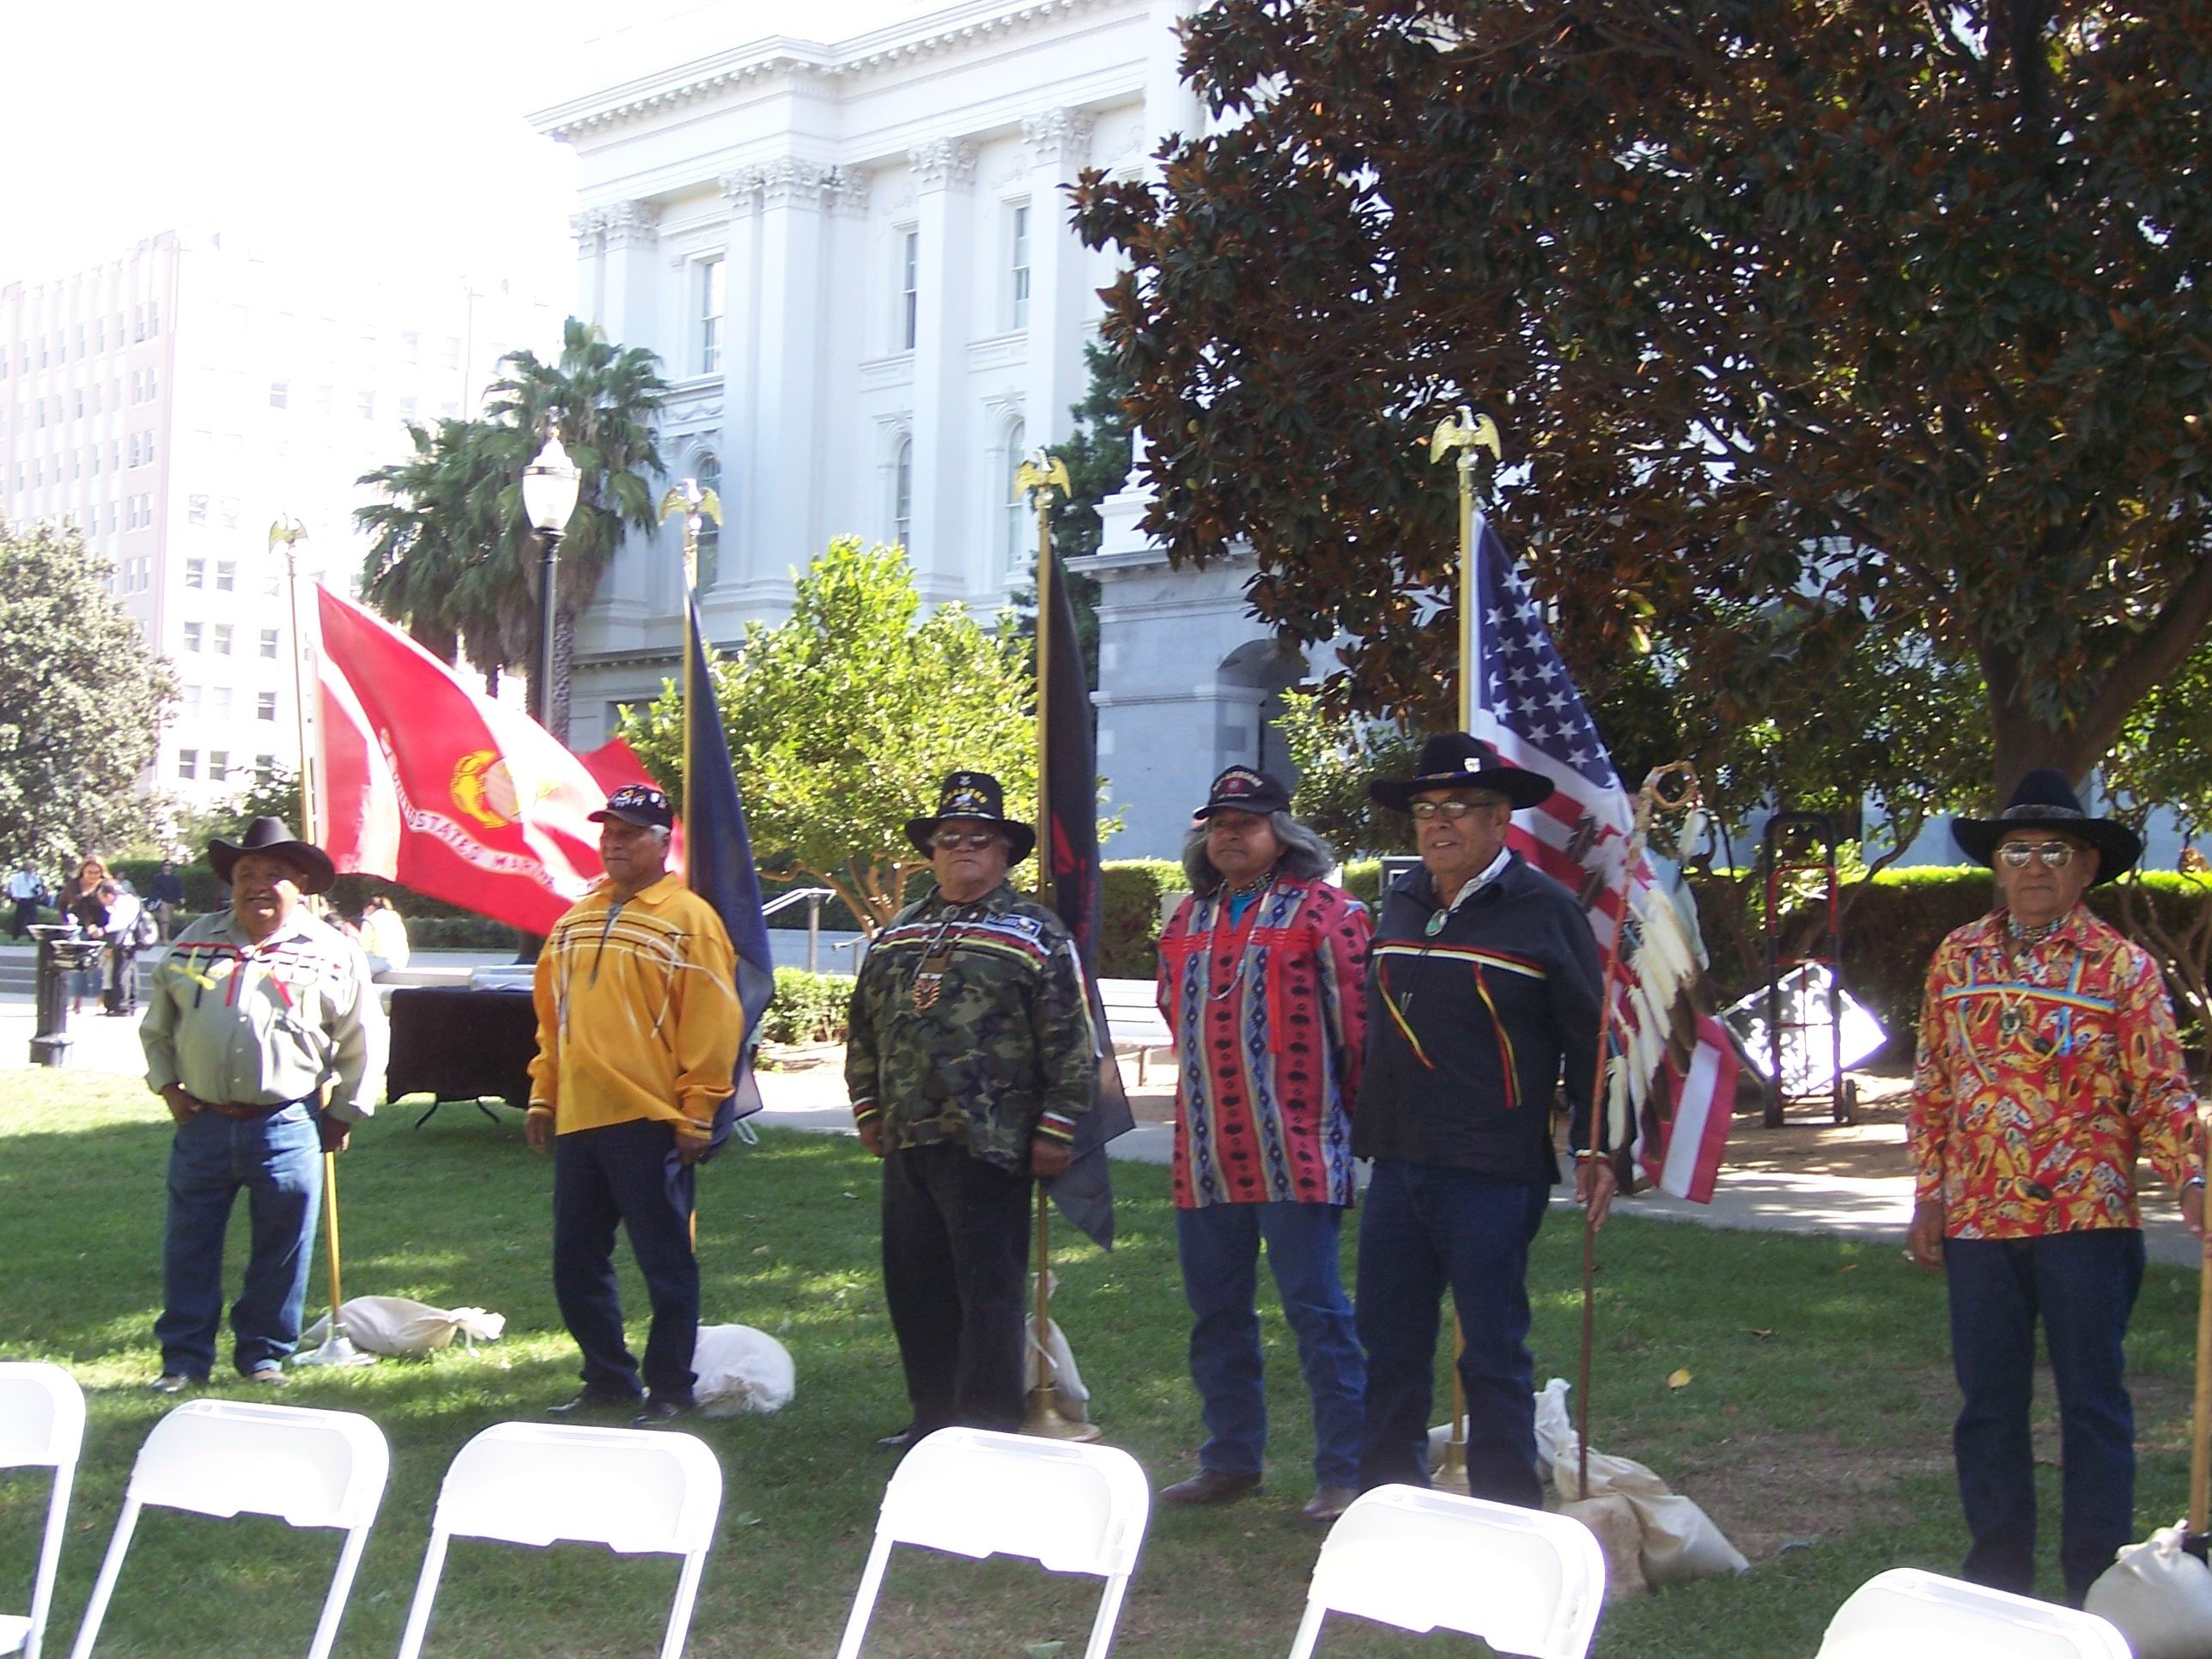 Vietnam Vets from Tule River at Native American Day September 22, 2006 at the California State Capitol. (Photo by Karen Santana)